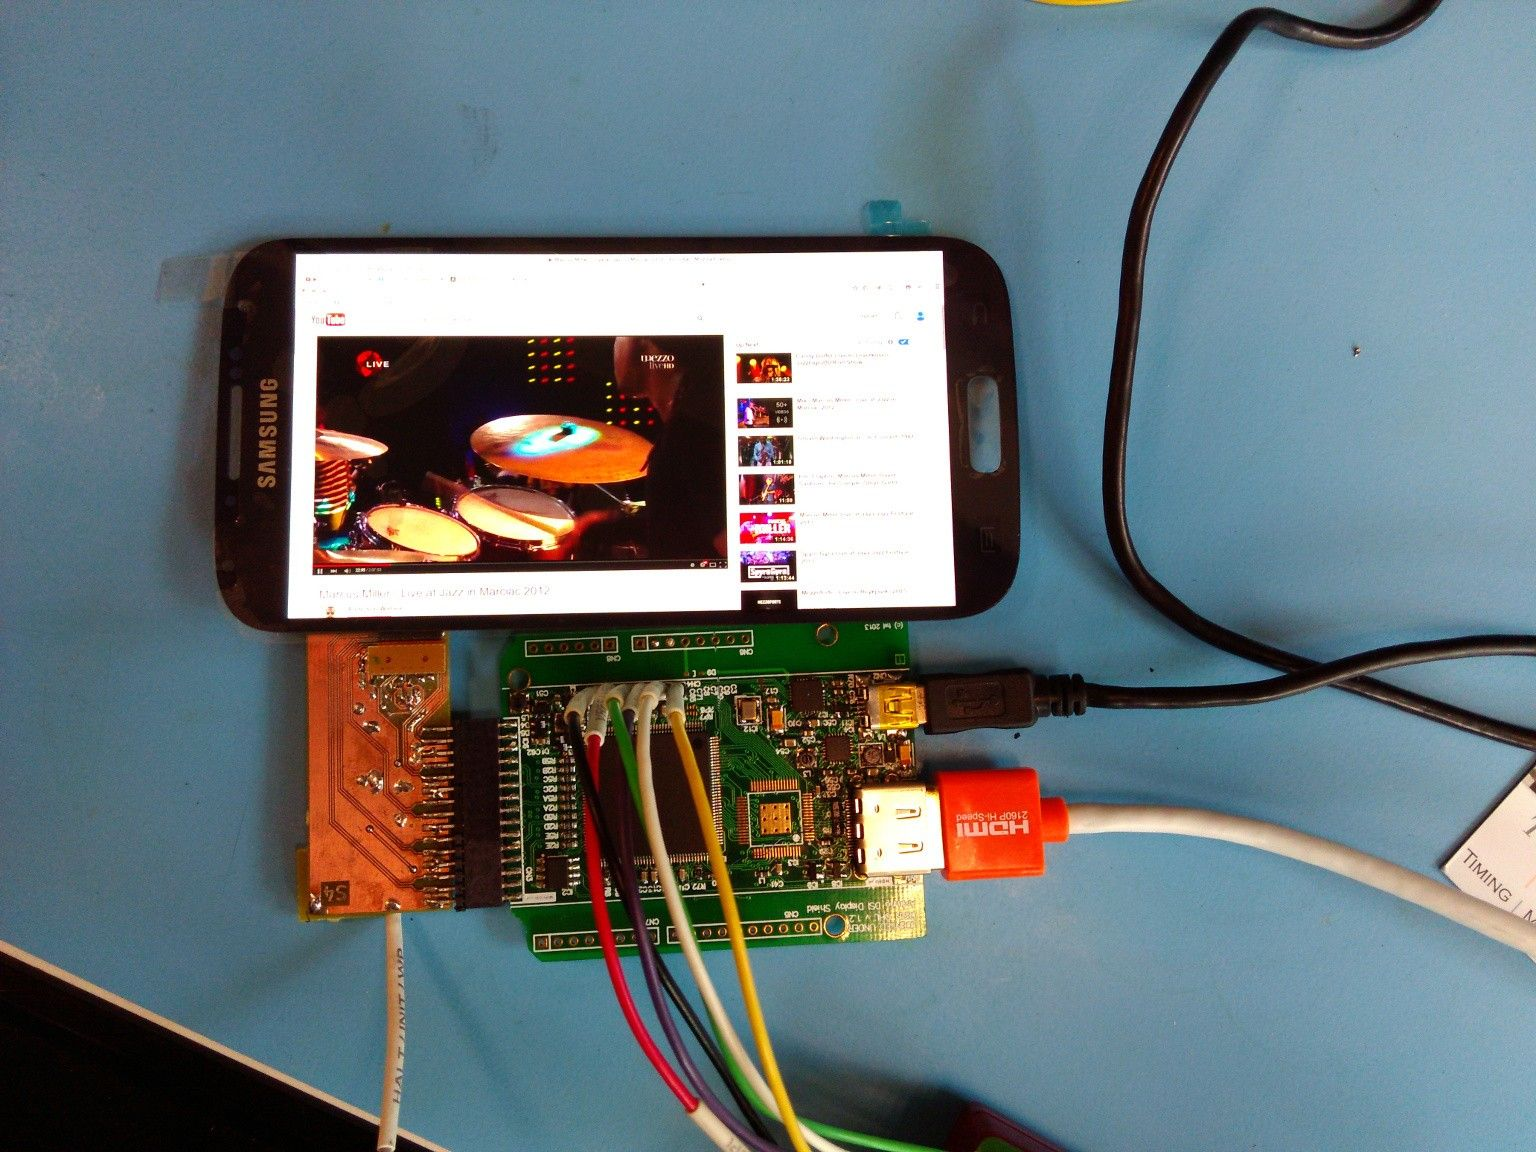 A simple controller for MIPI DSI displays, based on a Xilinx